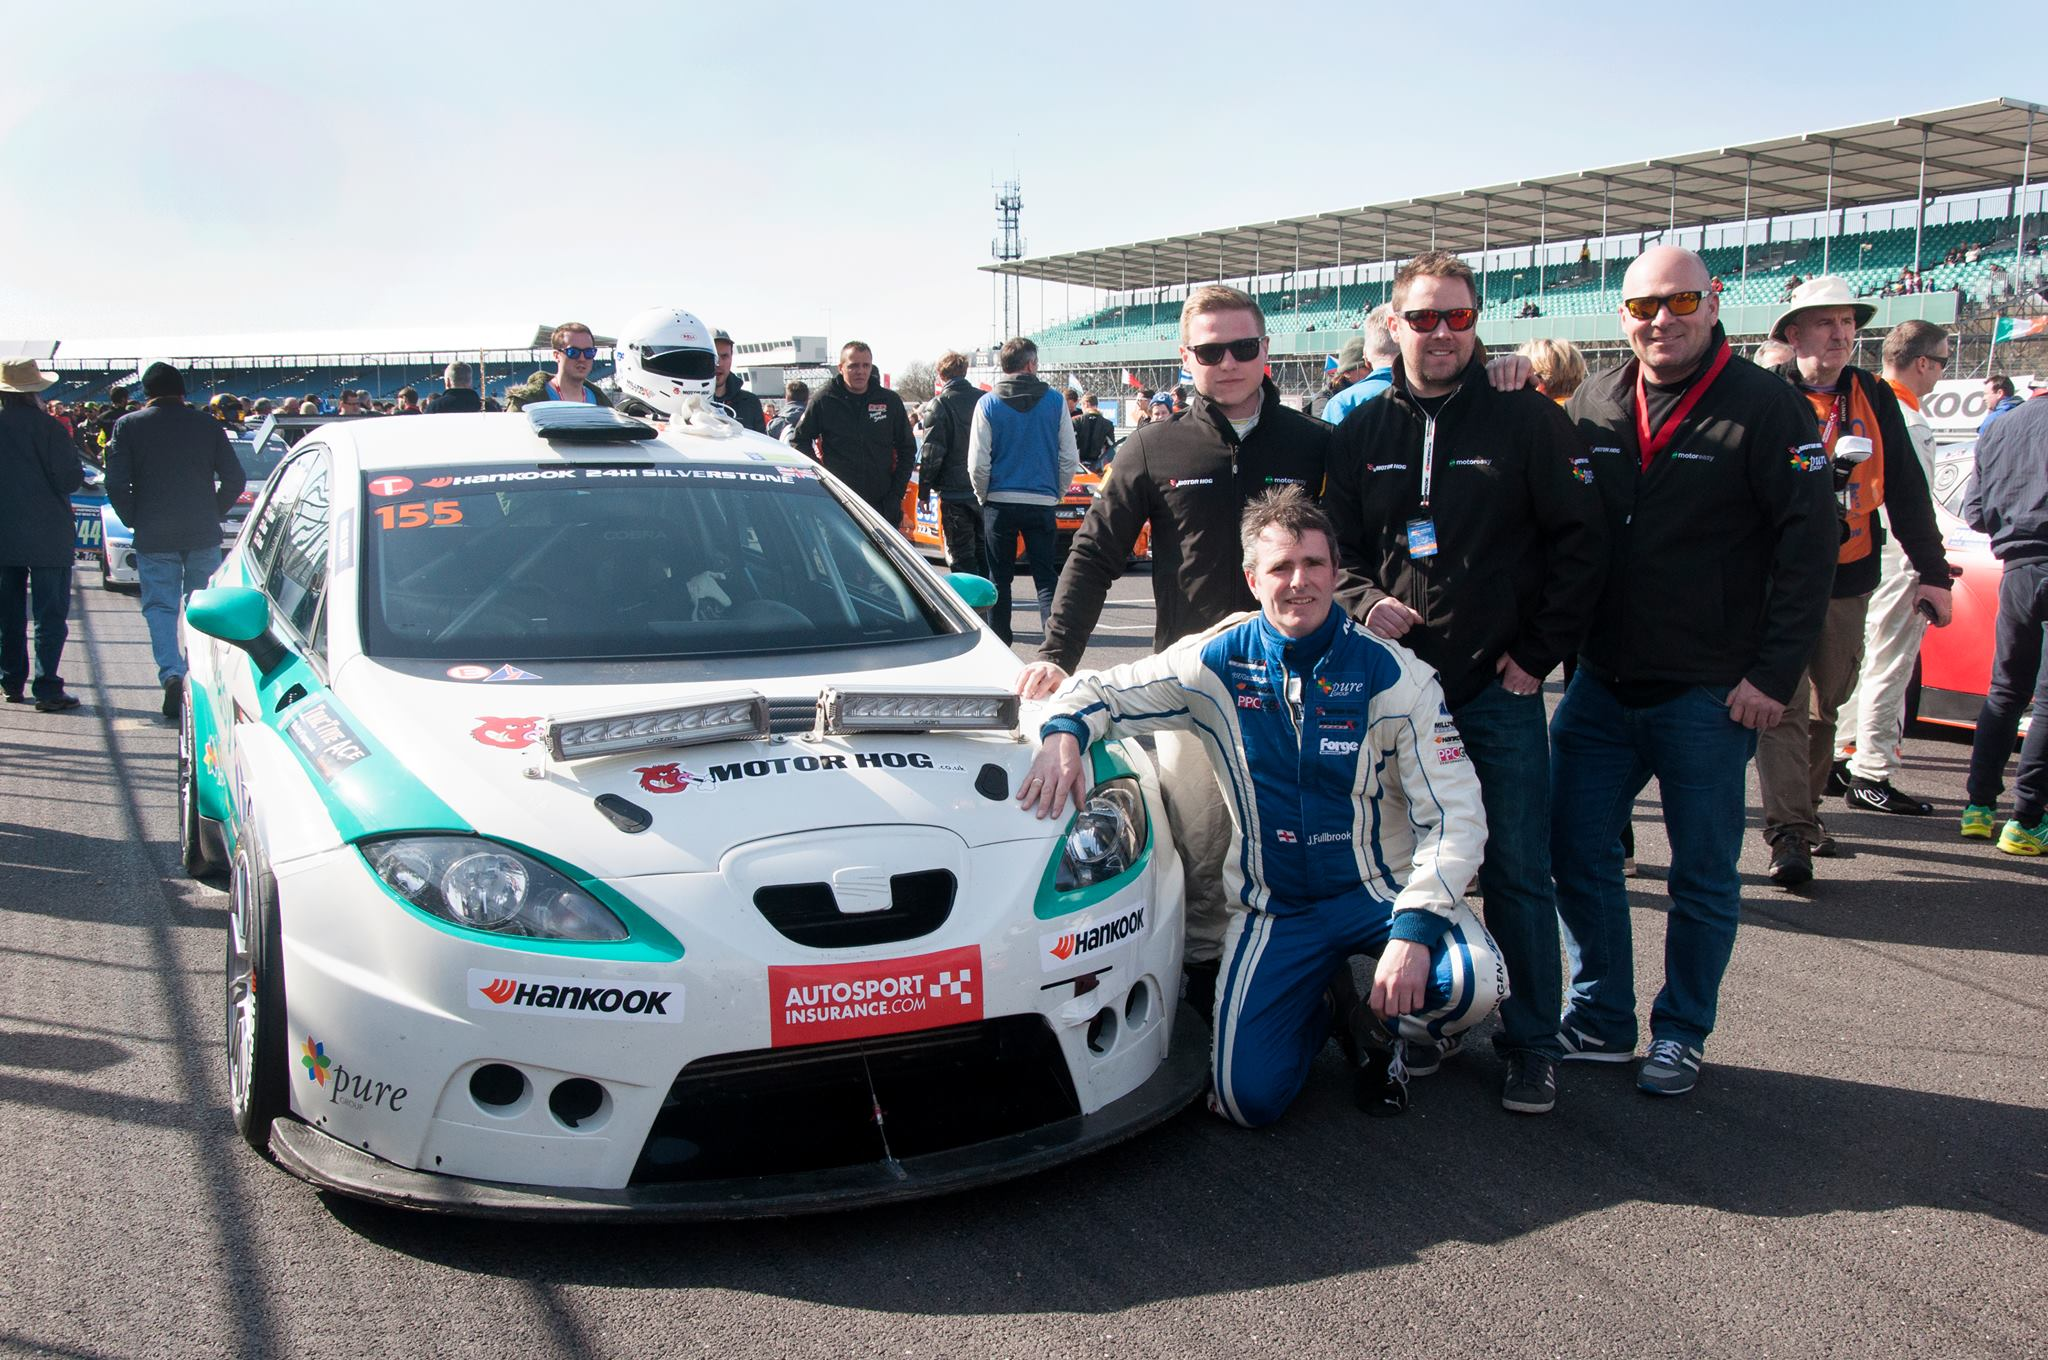 The whole team works together to get the MotorEasy car over the line